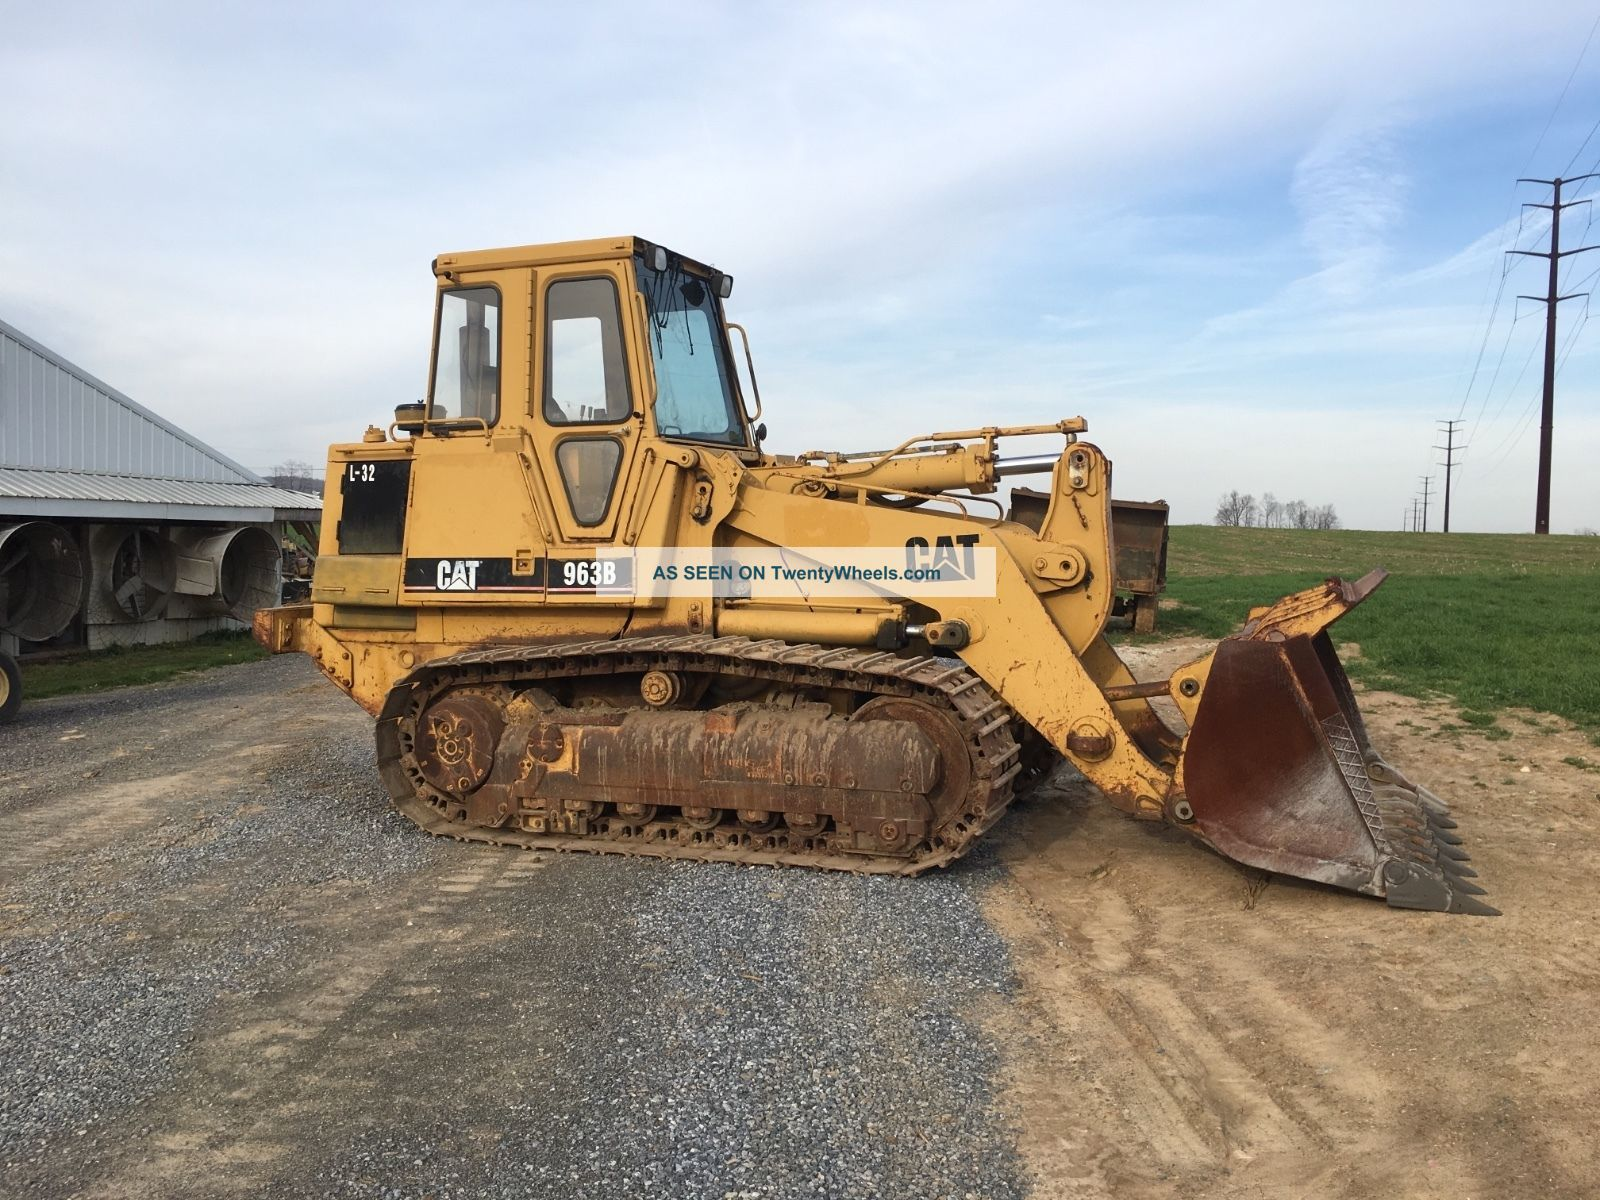 1990 Caterpillar 963 Engine Video Financing Available Crawler Dozers & Loaders photo